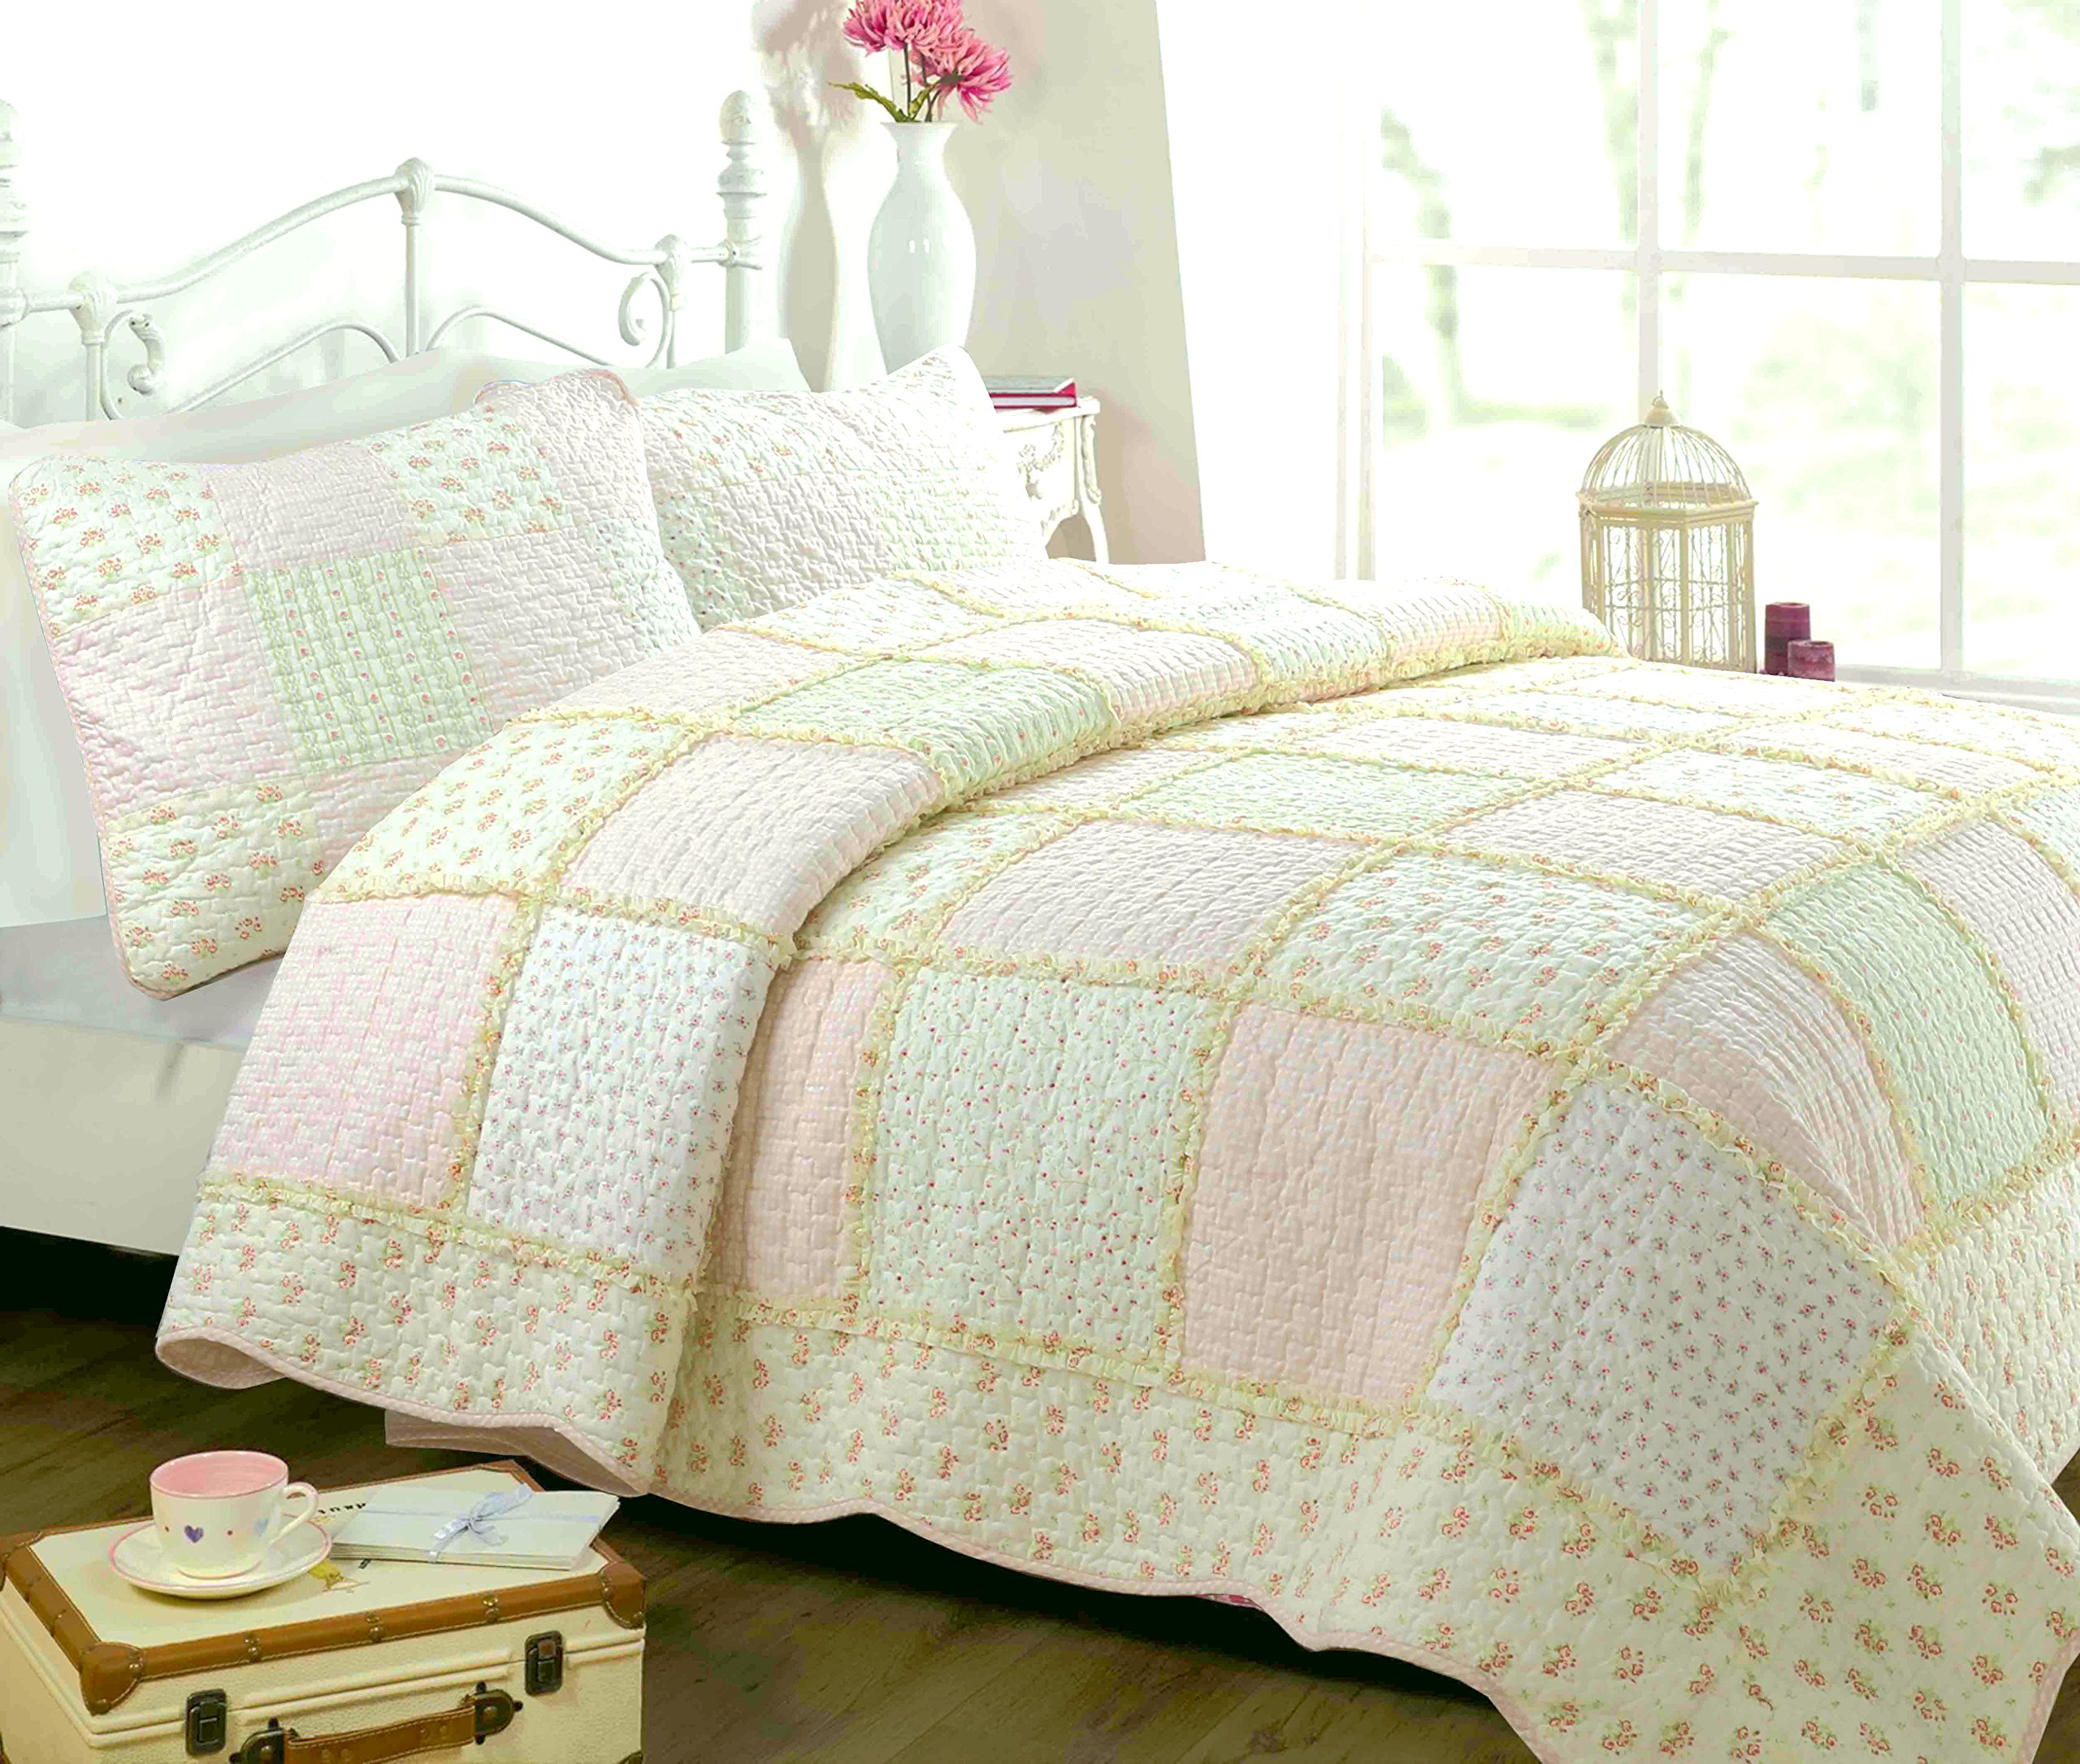 Cozy Line Home Fashions Sweet Peach Floral Light Pink/Yellow/Green/Rose Printed 3D Real Patchwork 100% COTTON Quilt Bedding Set, Reversible Coverlet Bedspread,Gifts for Her Girl Women(Queen - 3 piece)